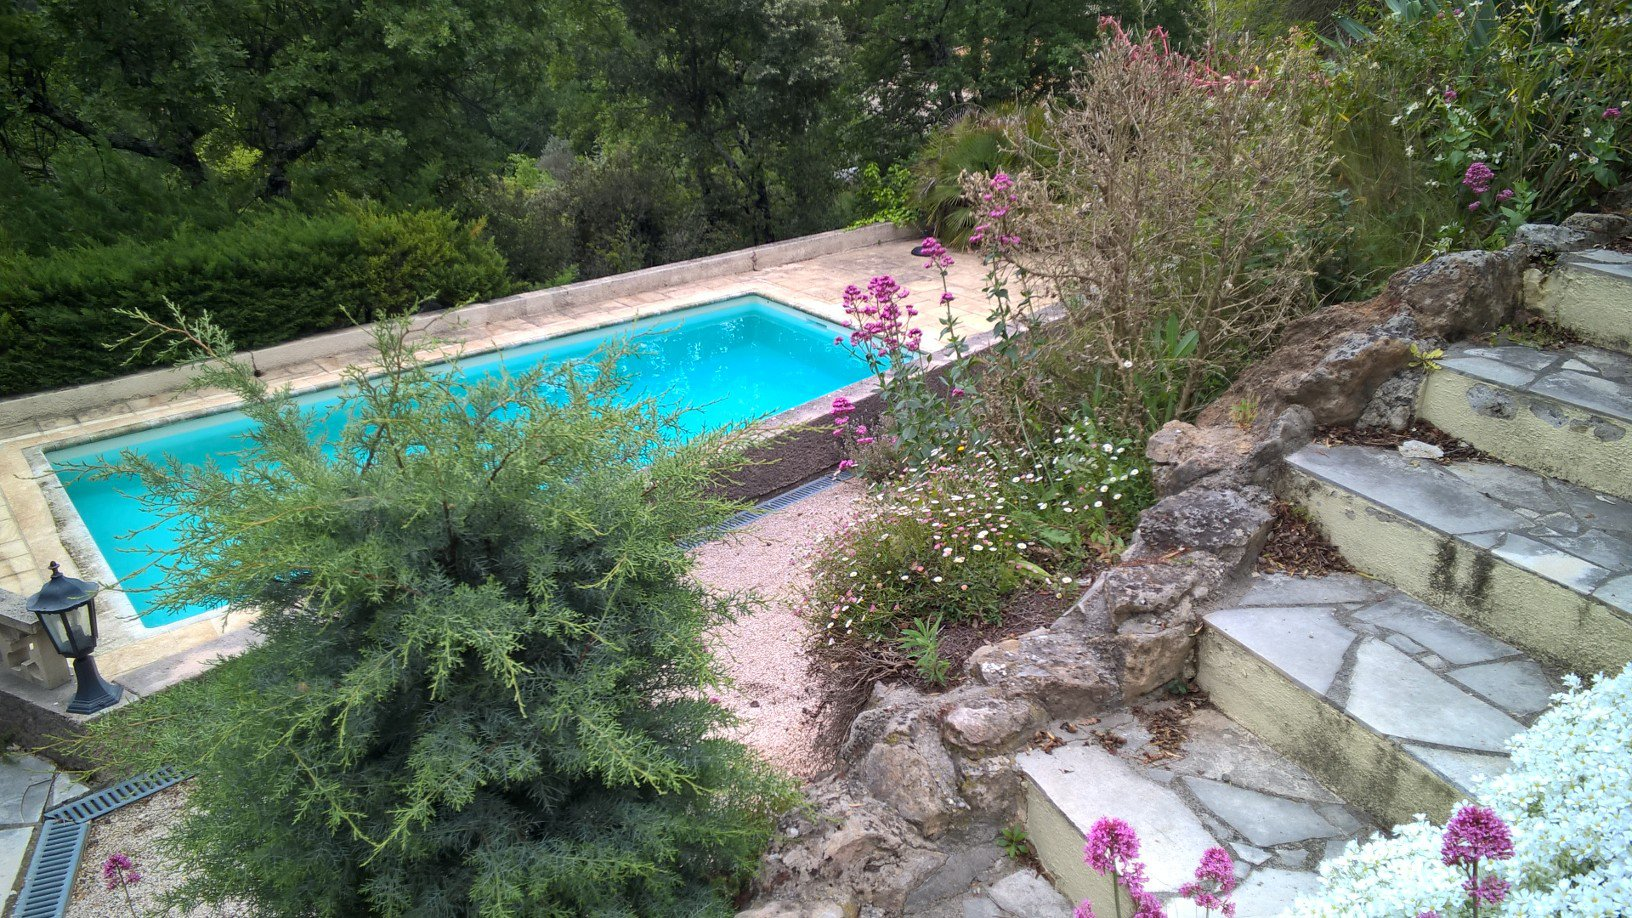 2/3 bedroom house and swimmingpool, quiet location Sillans, with views.